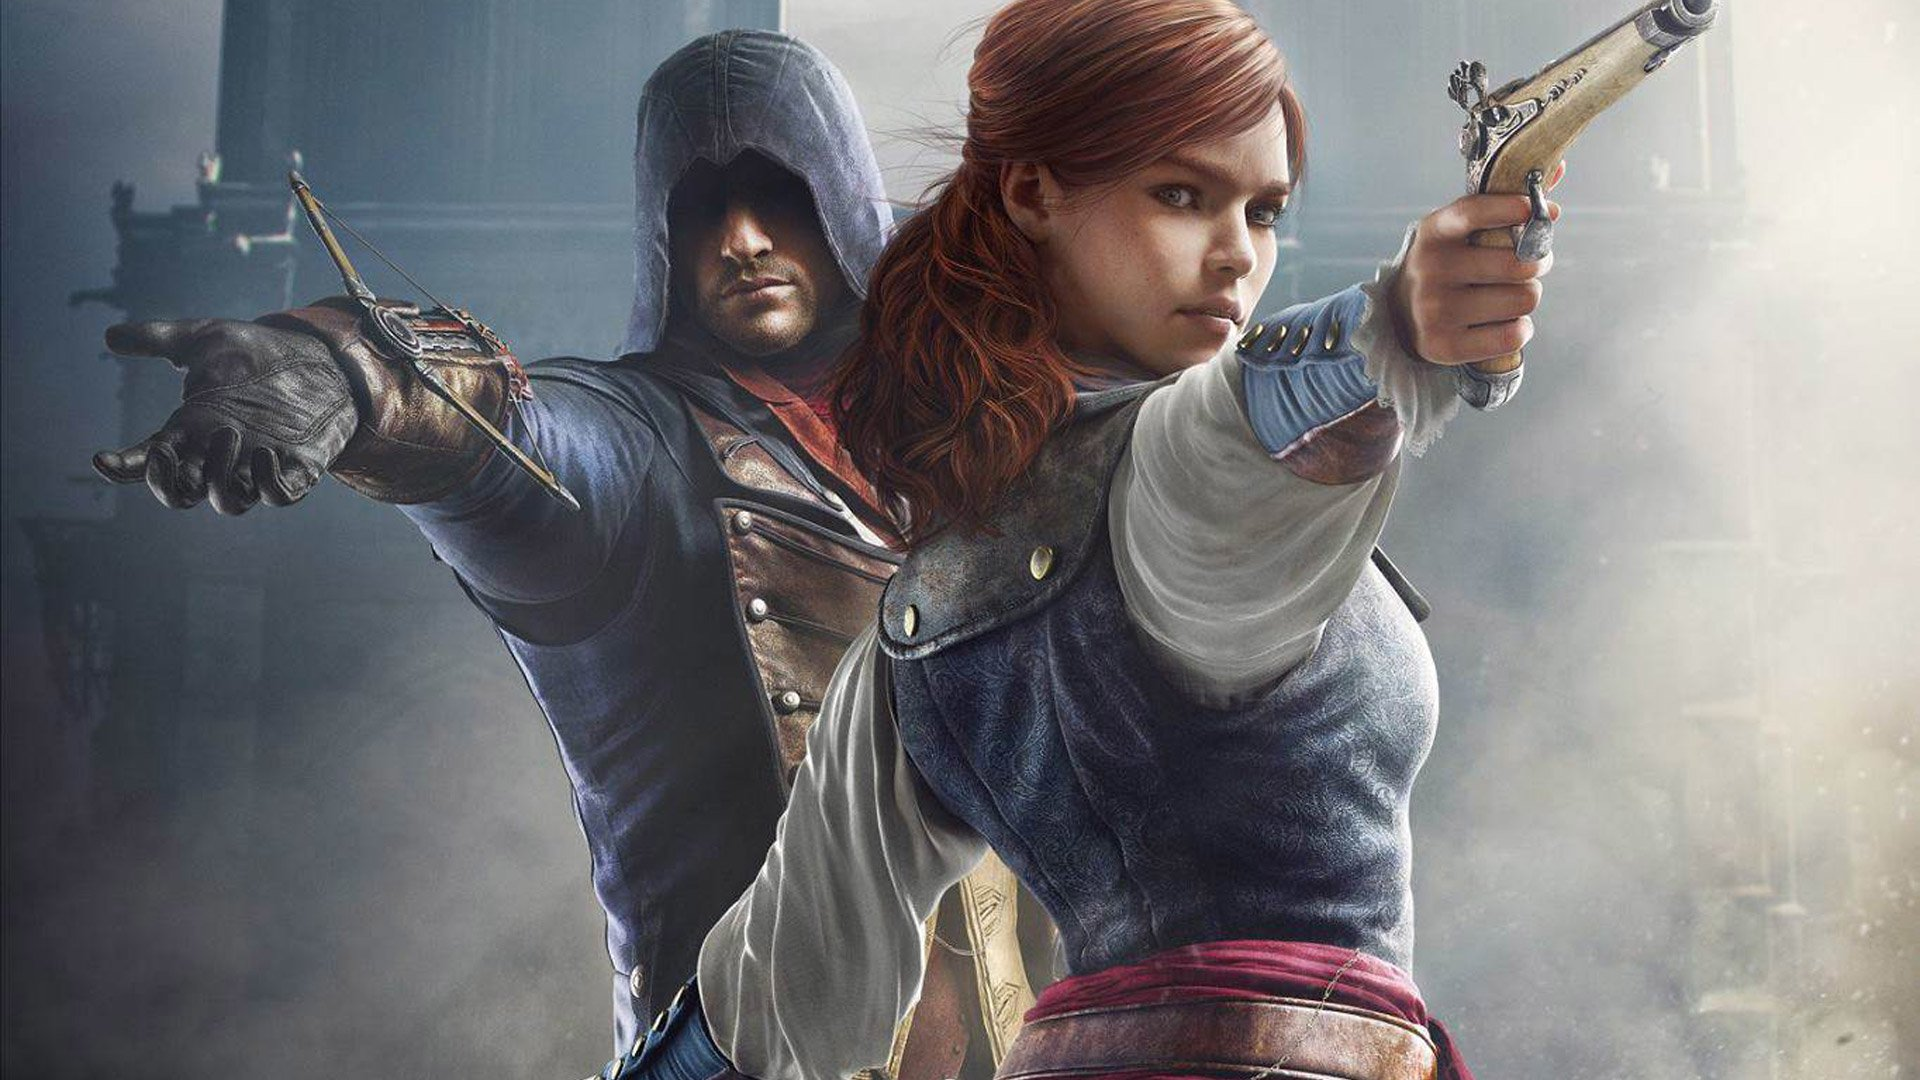 Arno Dorian And Elise Hd Wallpaper Background Image 1920x1080